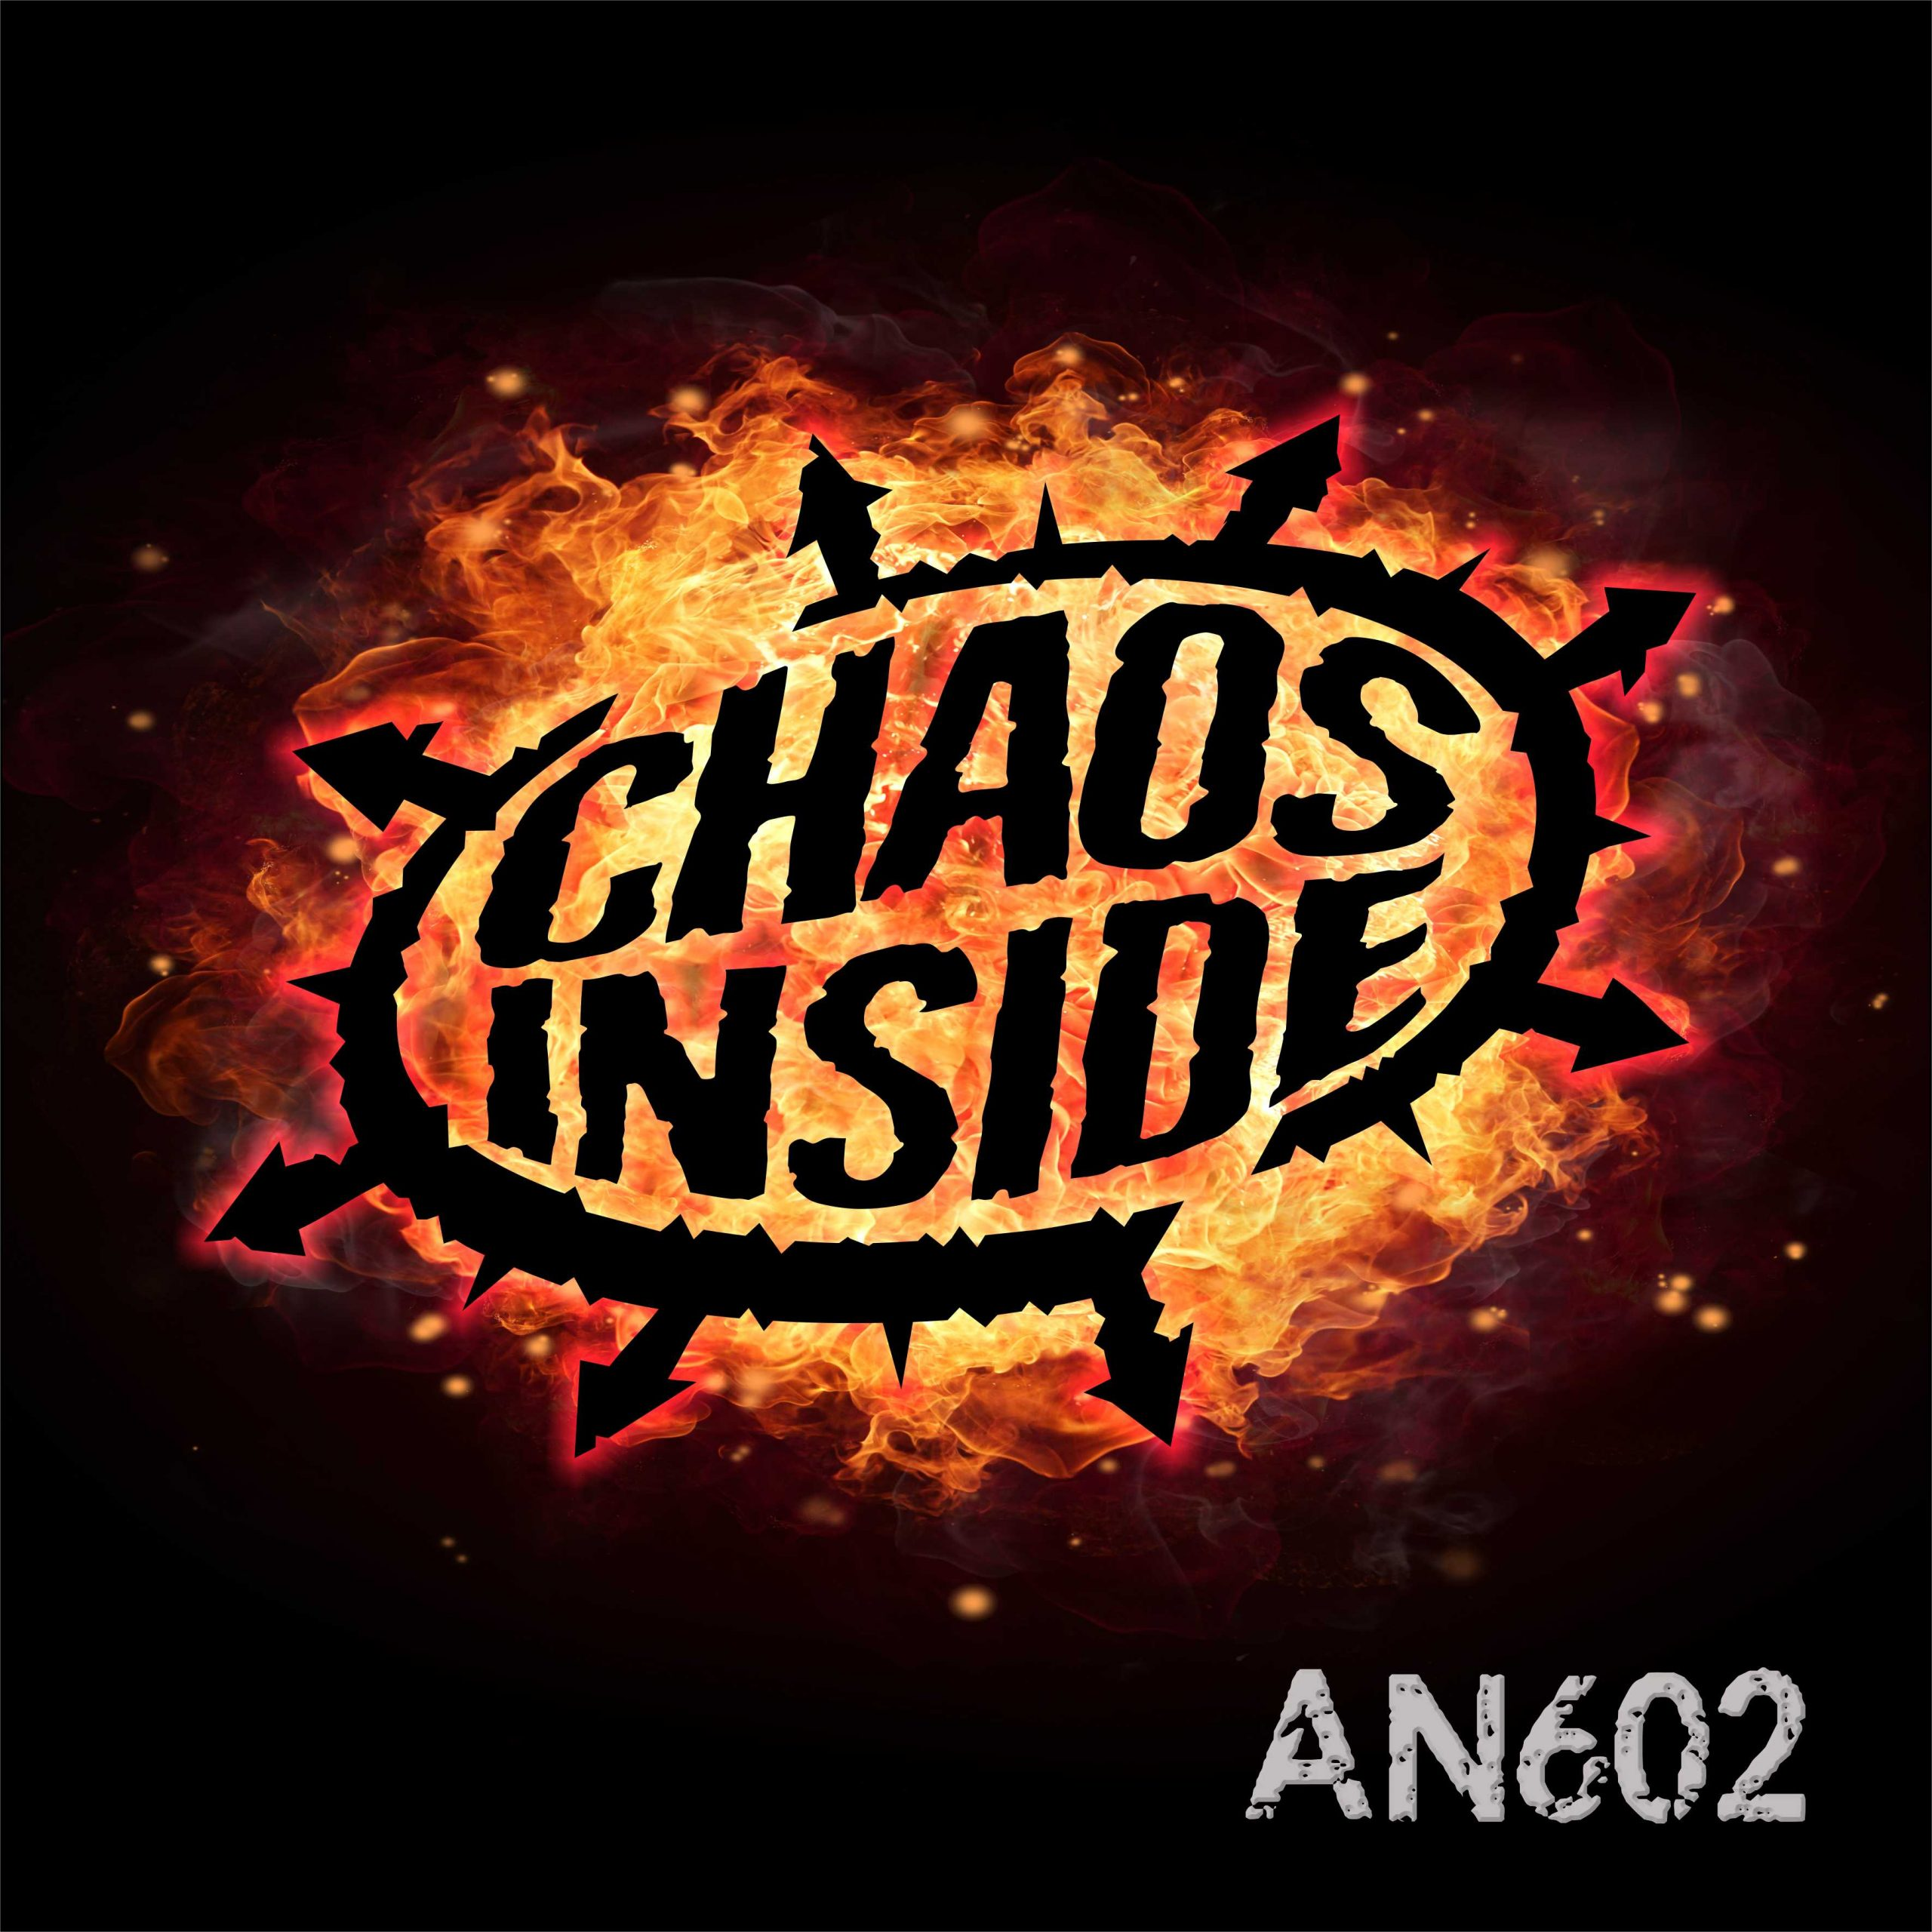 chaos-inside-an602-album-review